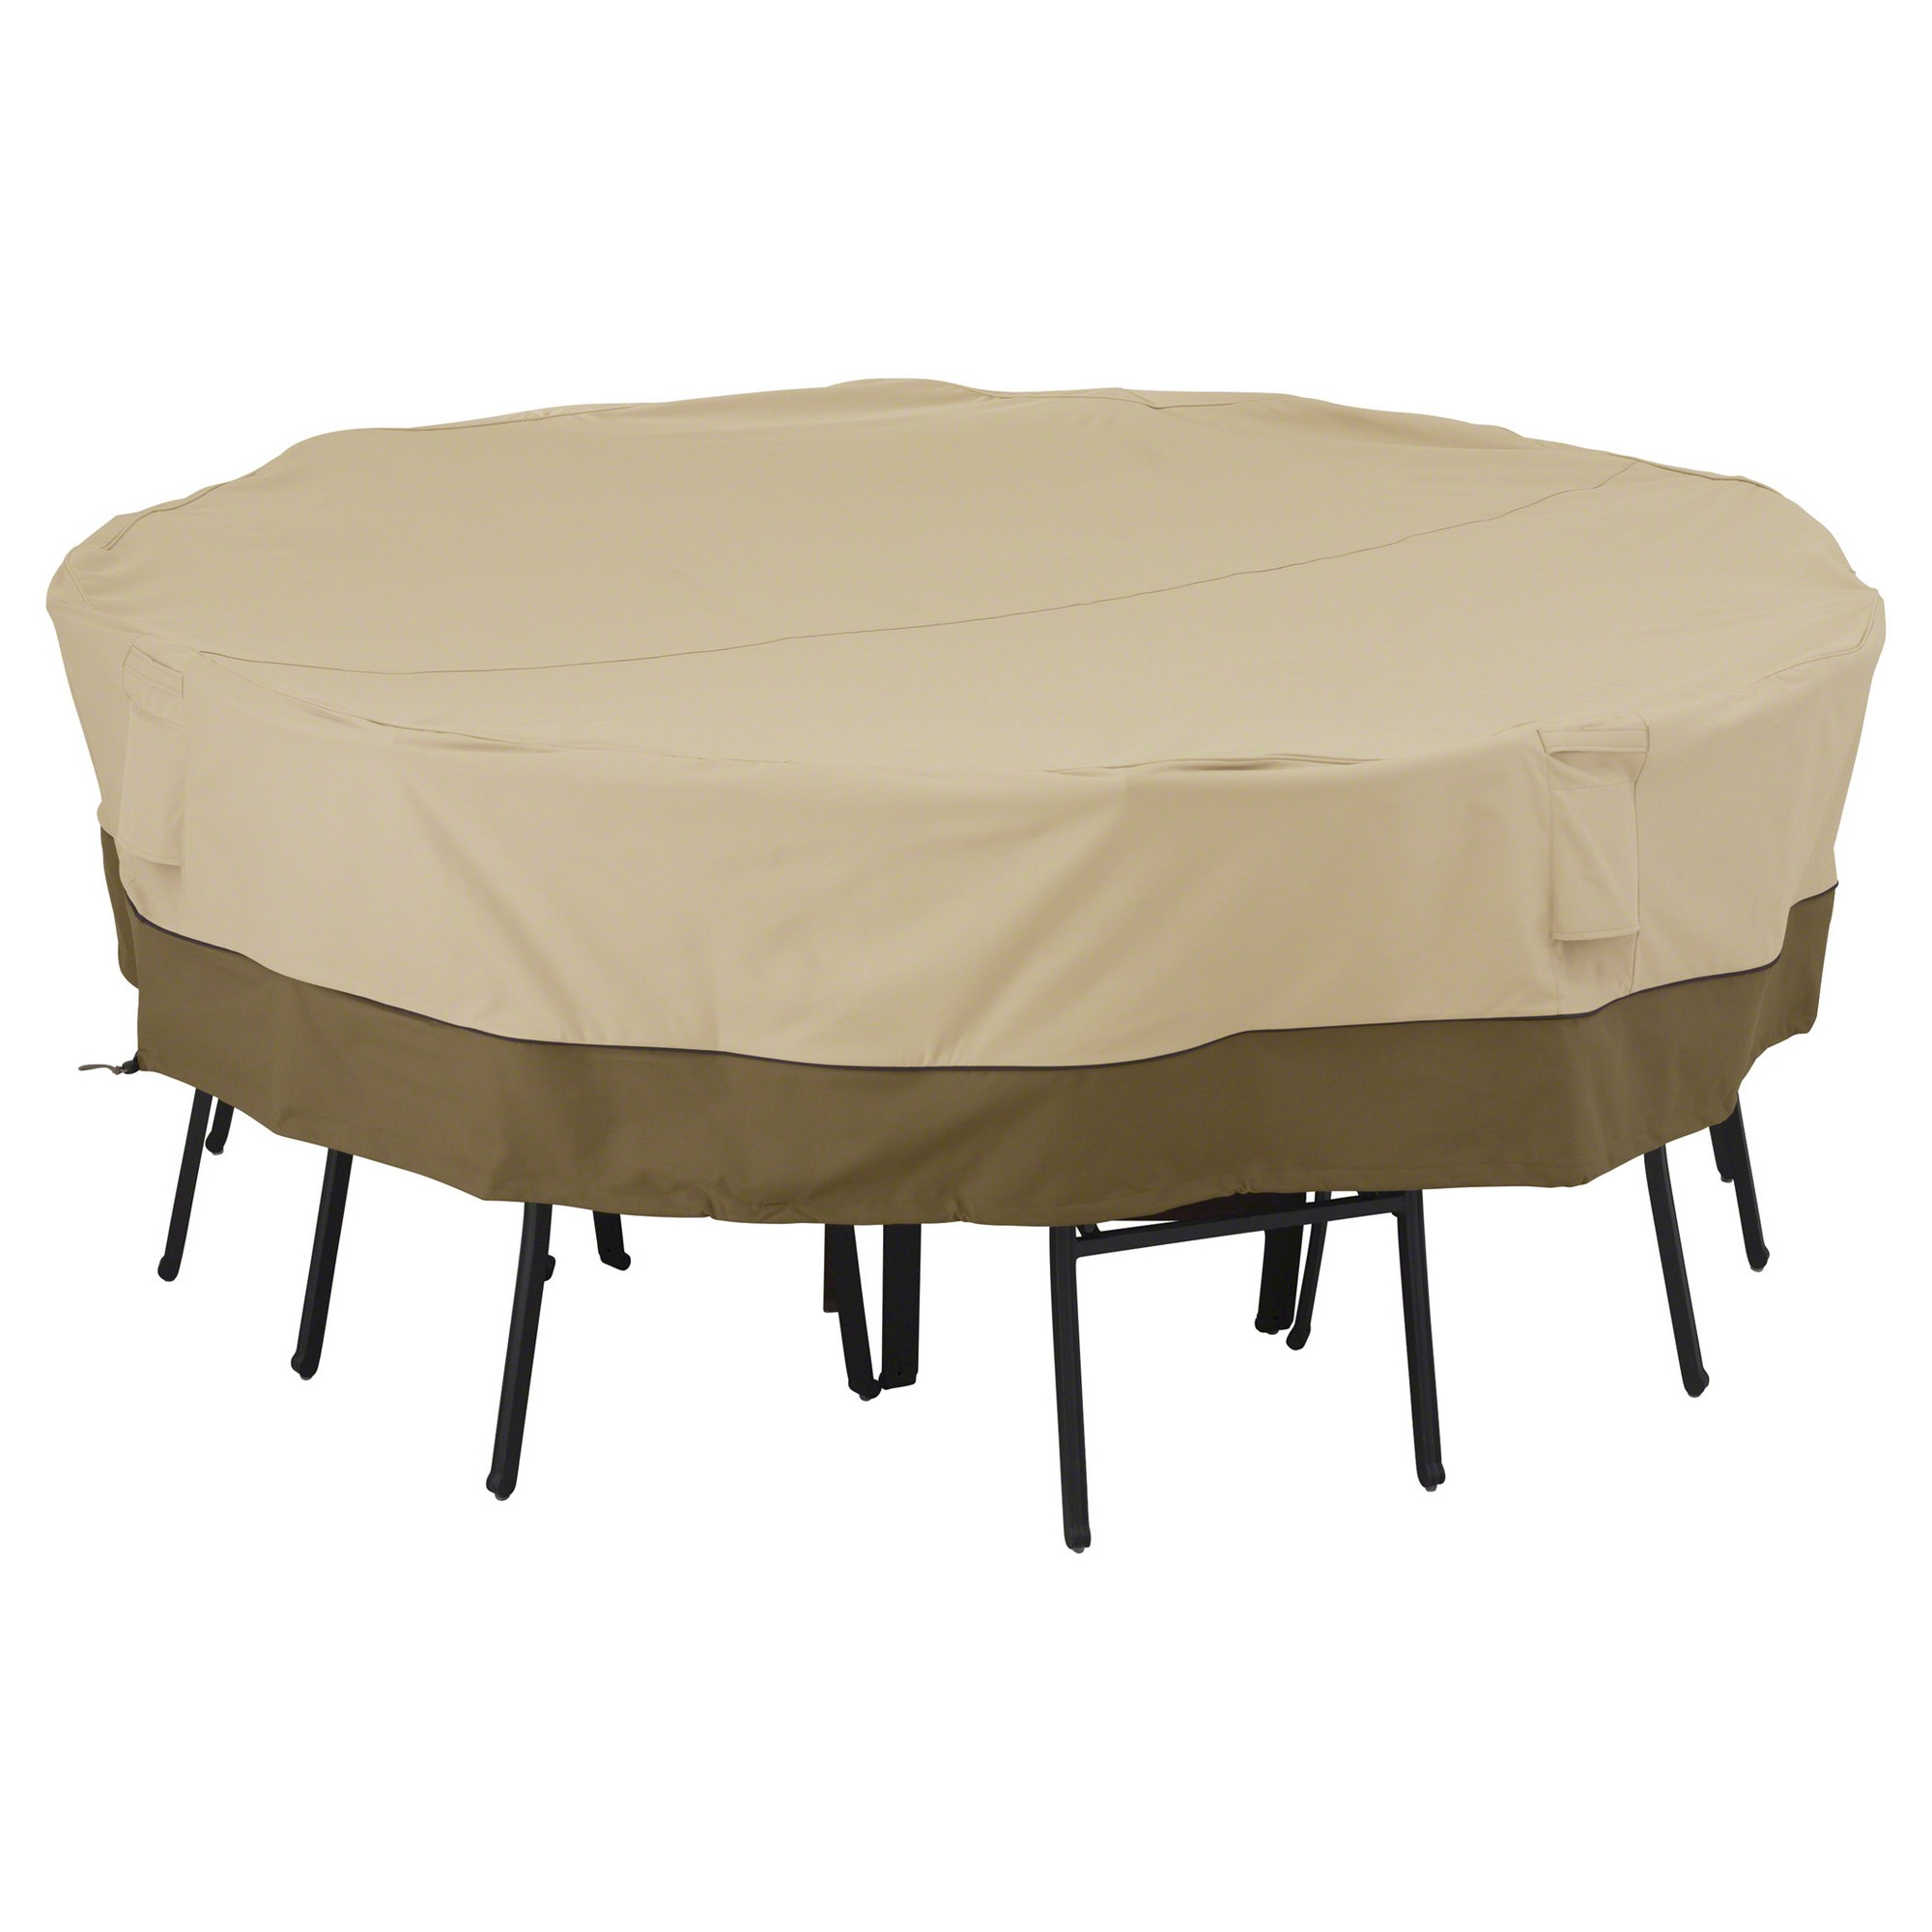 covermates patio furniture covers. Veranda Large Square Patio Table And 8 Chairs Cover - Light Pebble Classic Accessories Covermates Furniture Covers